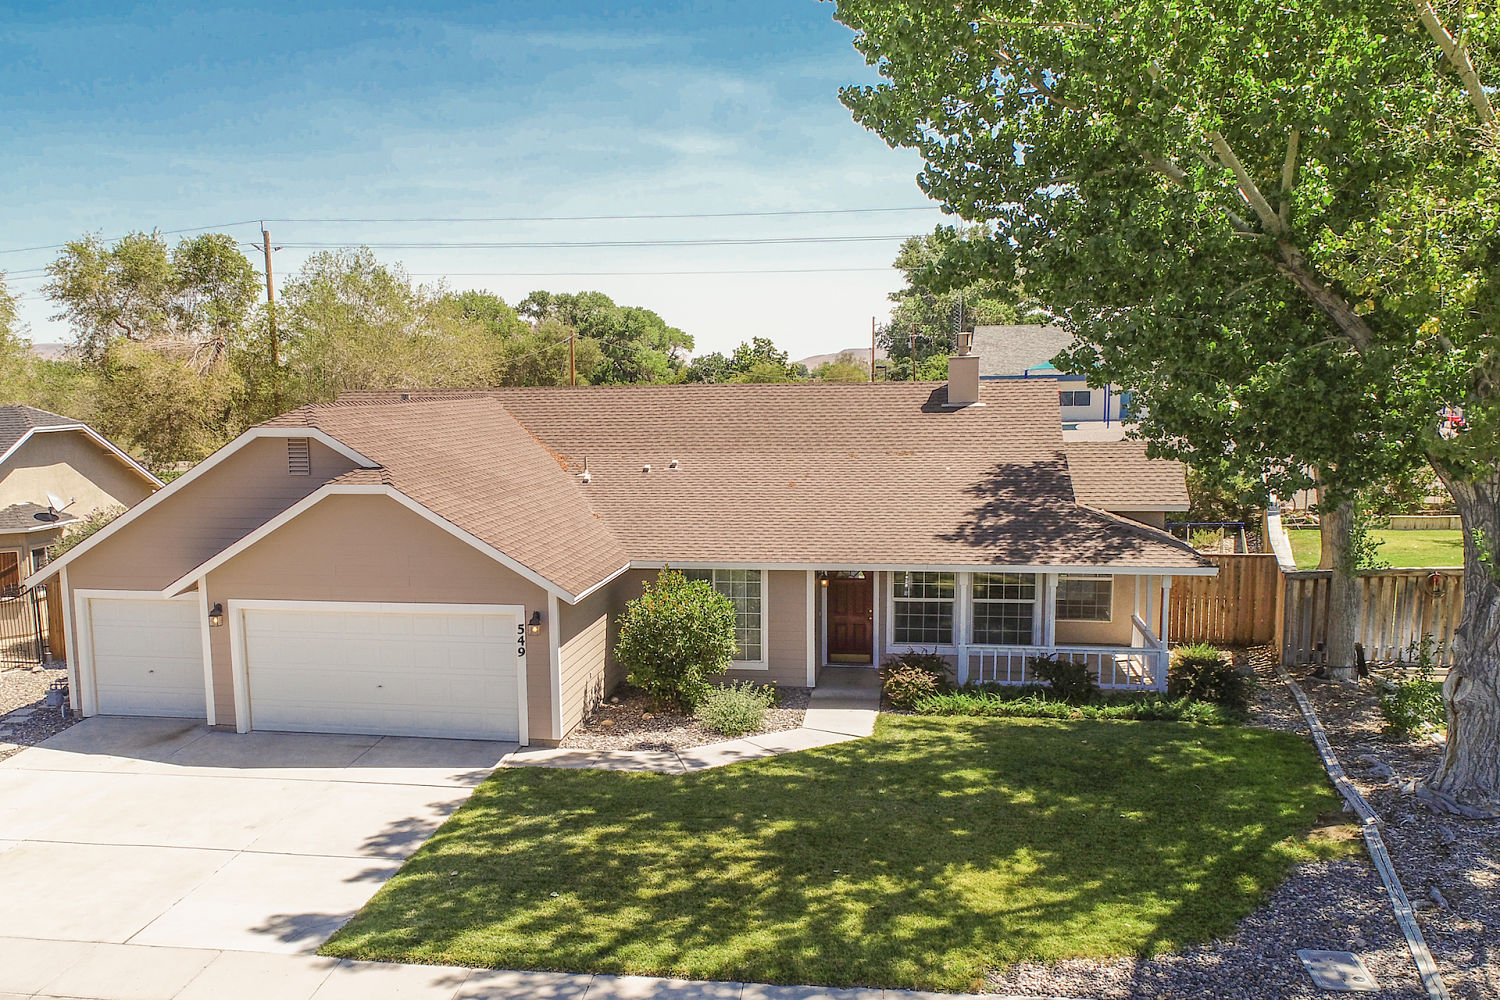 549 Wedge Lane, Fernley - sold on september 25, 2019 for $303,000